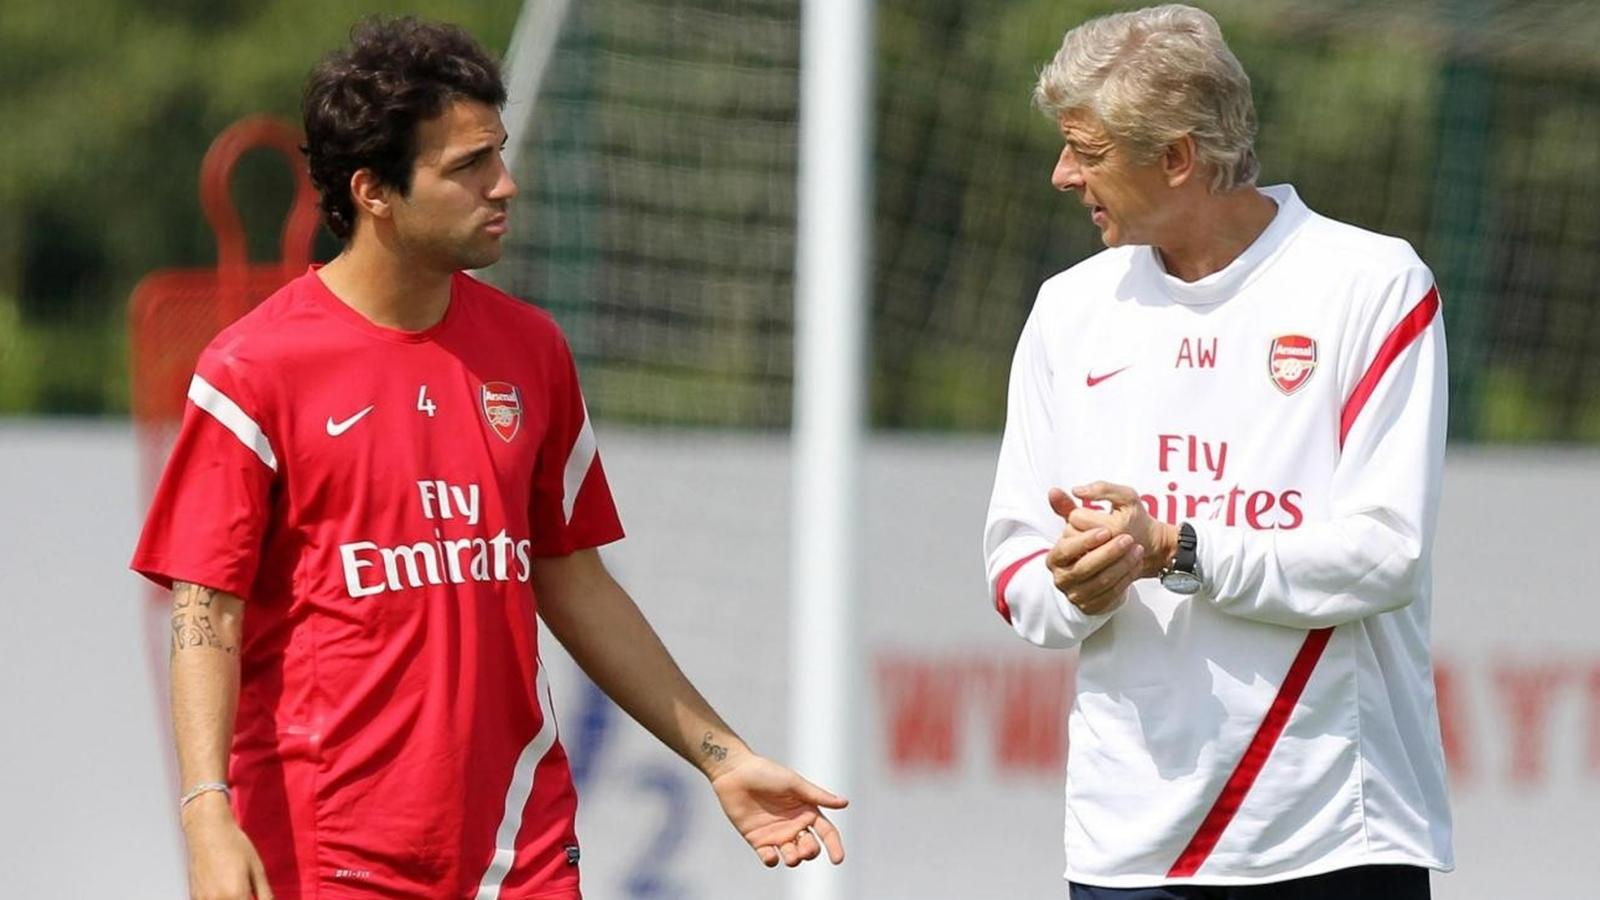 Arsene Wenger gave Fabregas his professional debut when the Spaniard was just 16